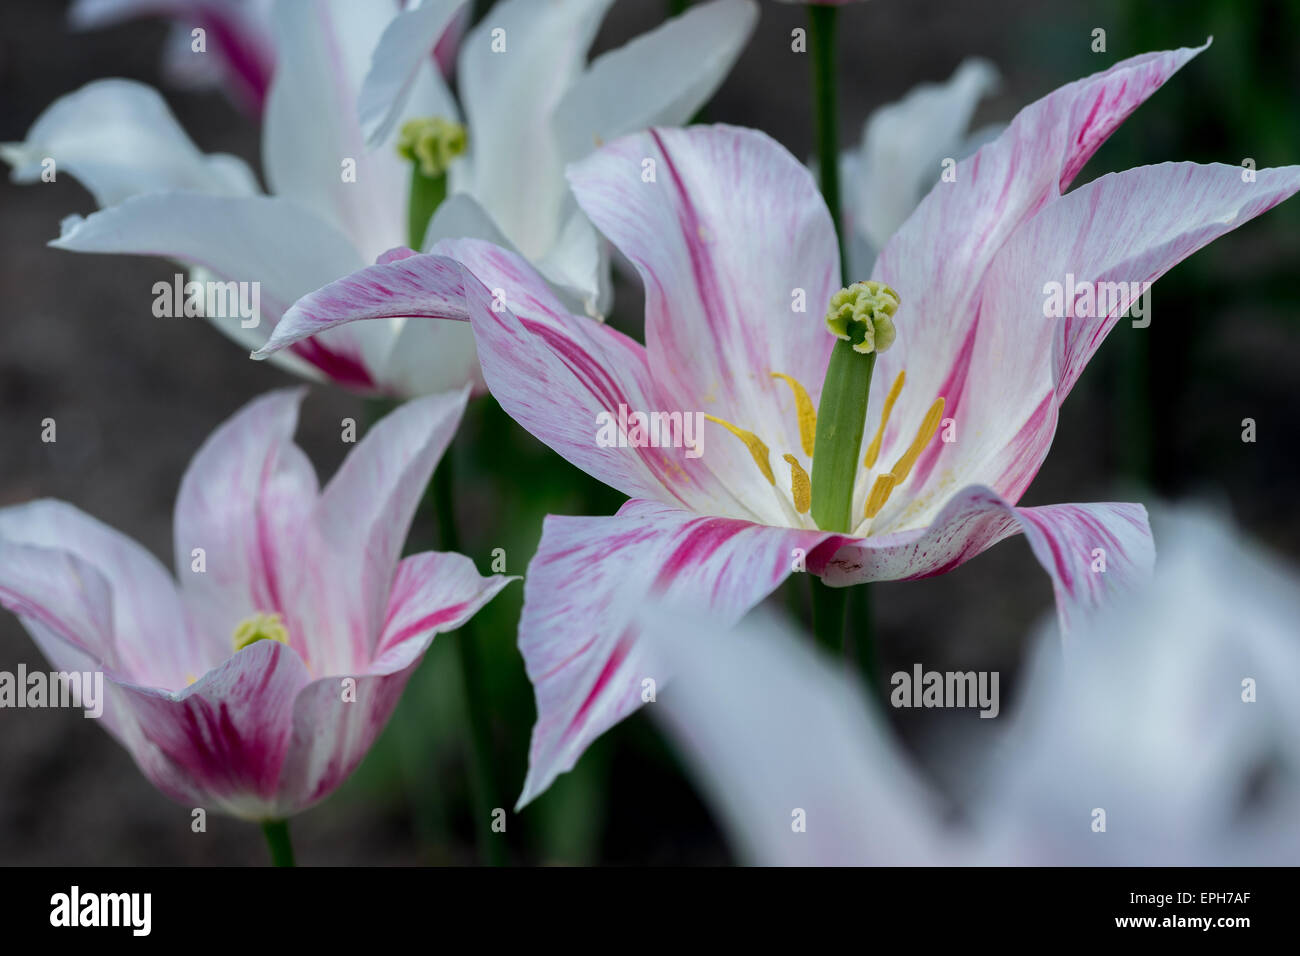 White tulips with red strap on elongated petals - Stock Image